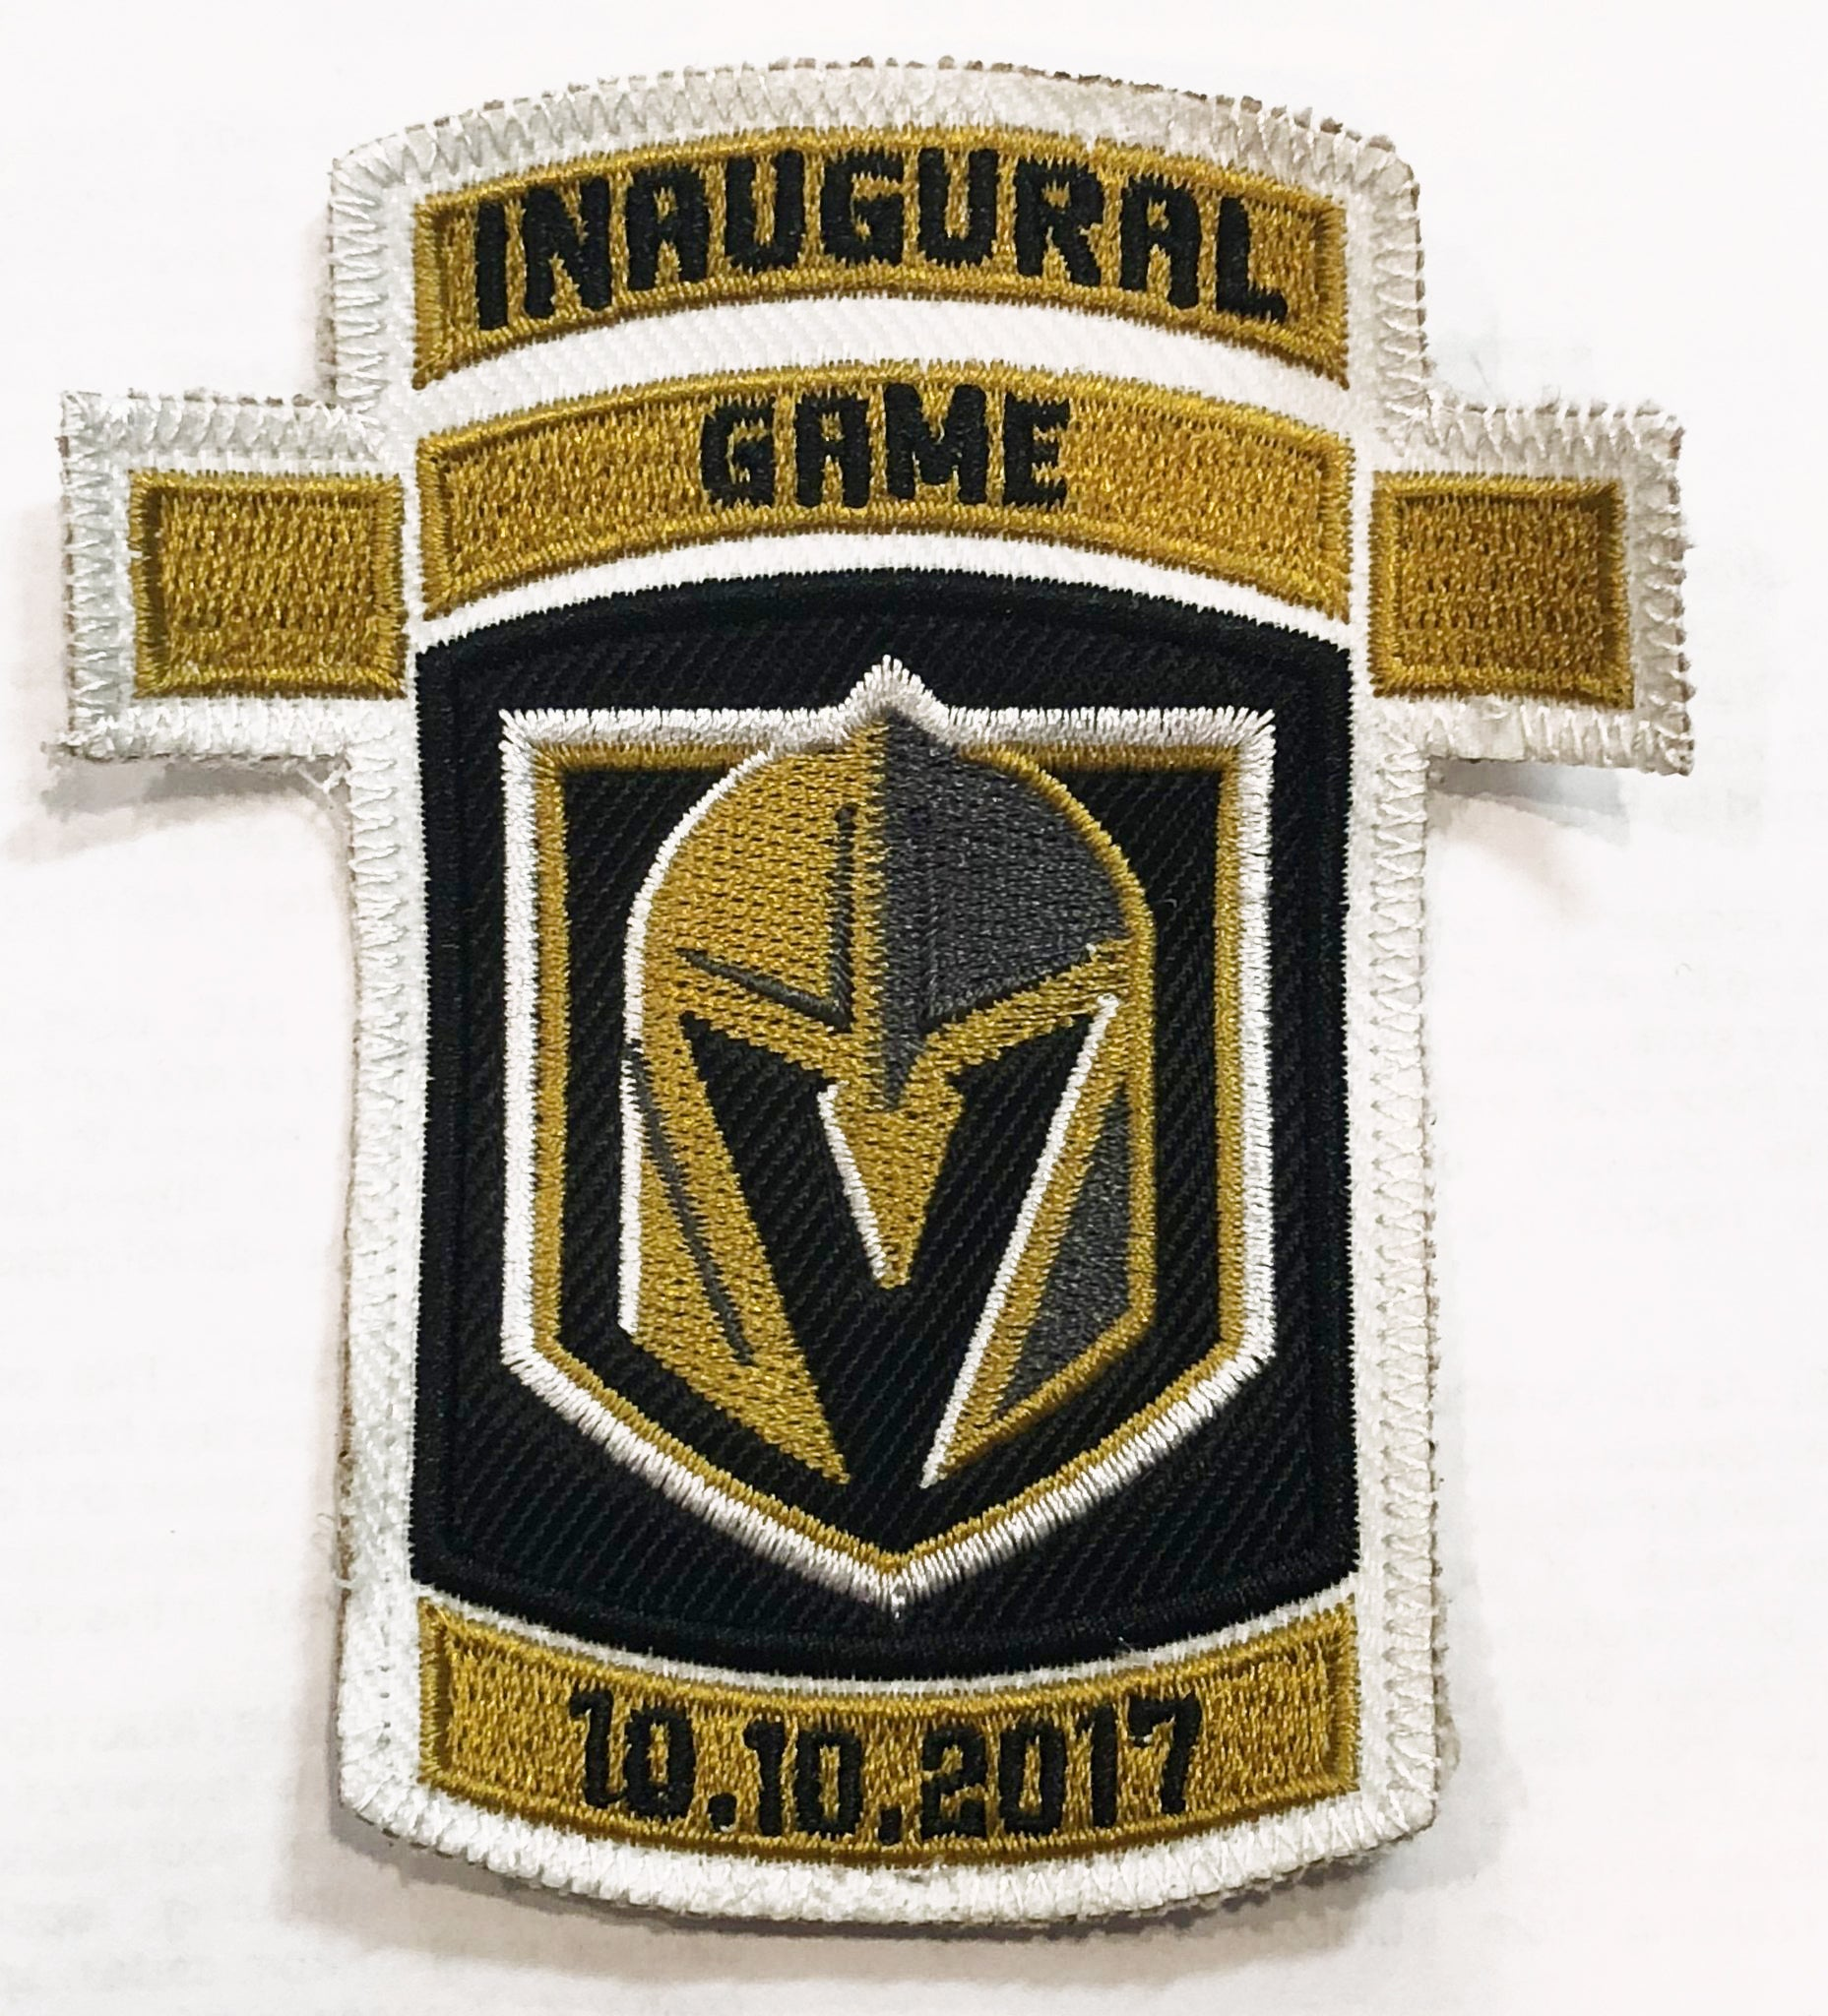 47a2aafc113 Vegas Golden Knights Patches - JUST PATCHES (Inaugural Game ...